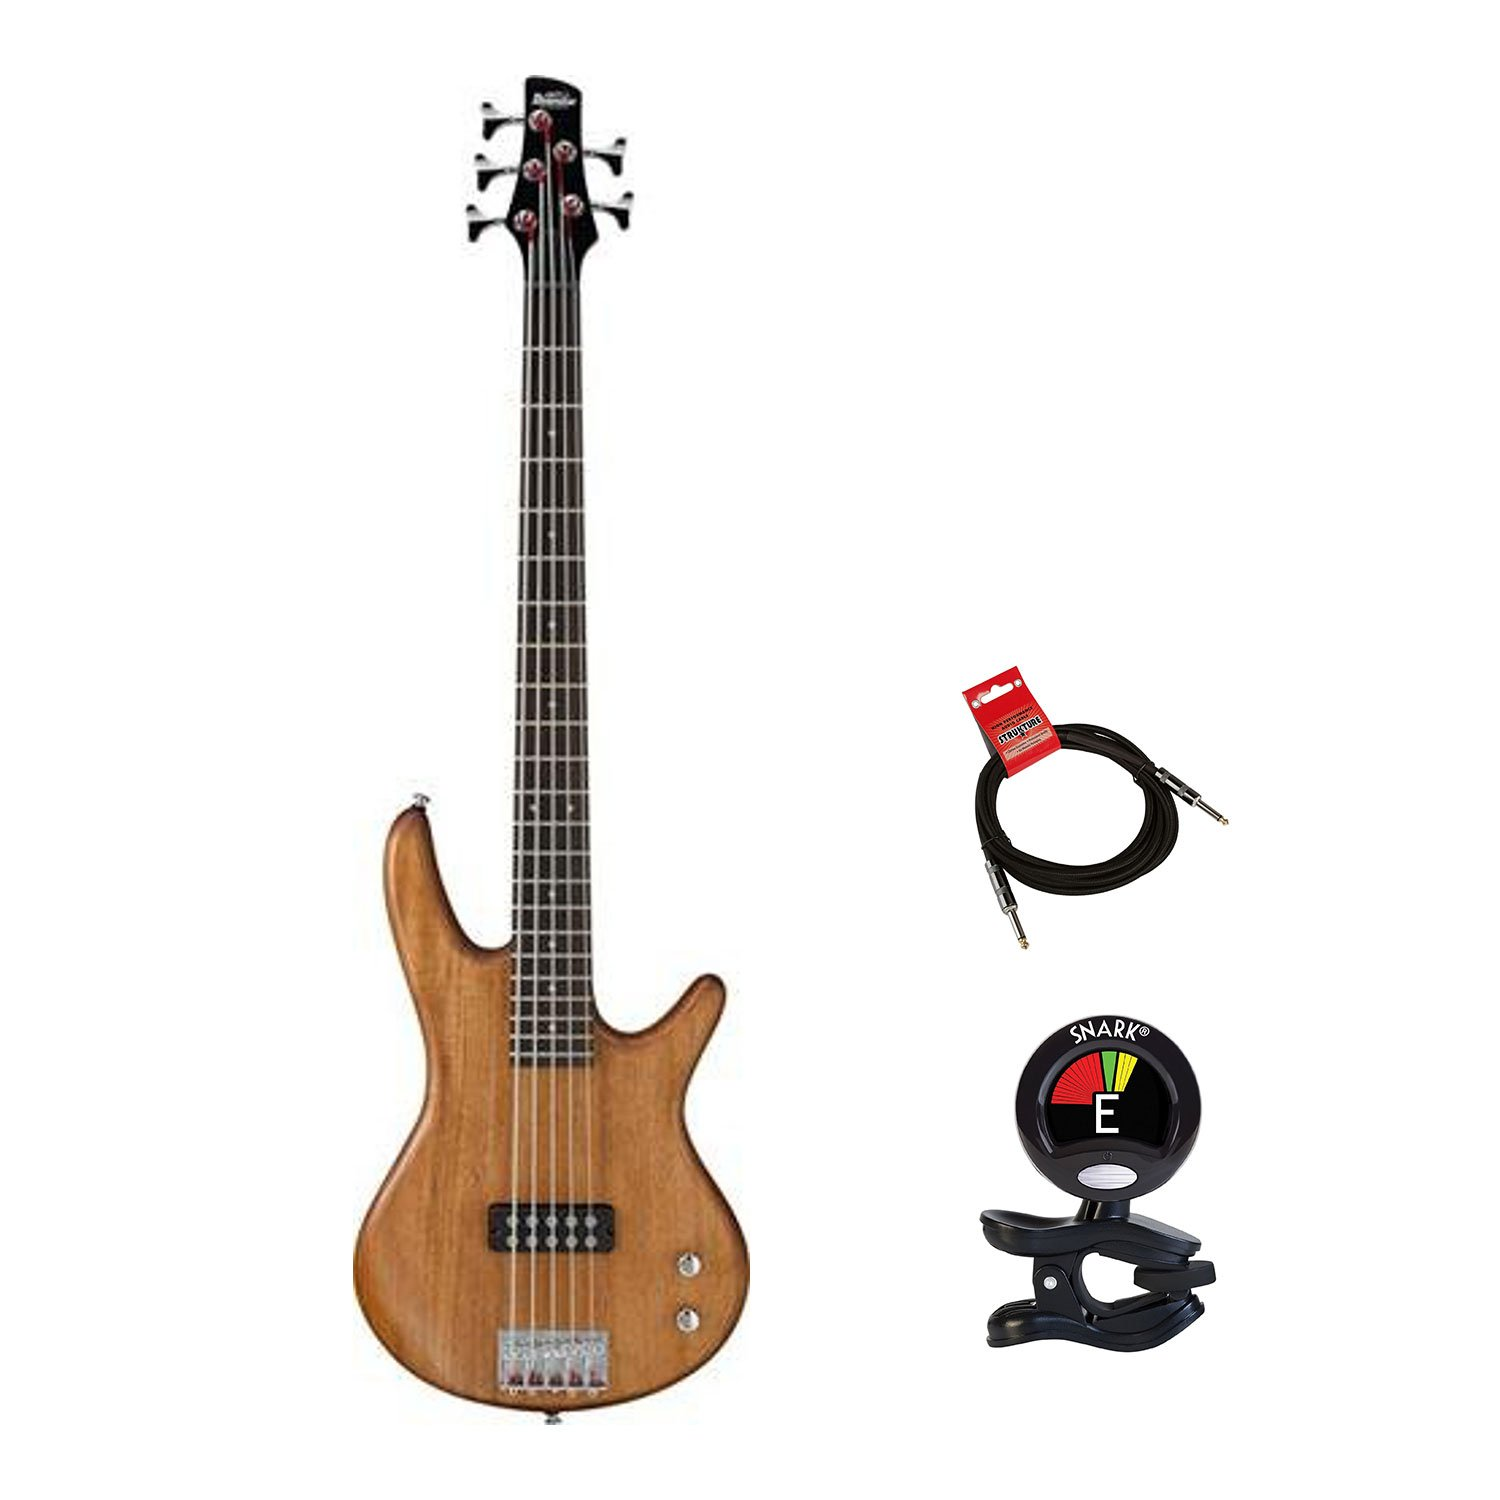 Ibanez GSR105EX 5 String Electric Bass Guitar KIT in Natural Mahogany Oil Finish With Clip On Guitar Tuner and Guitars Cable